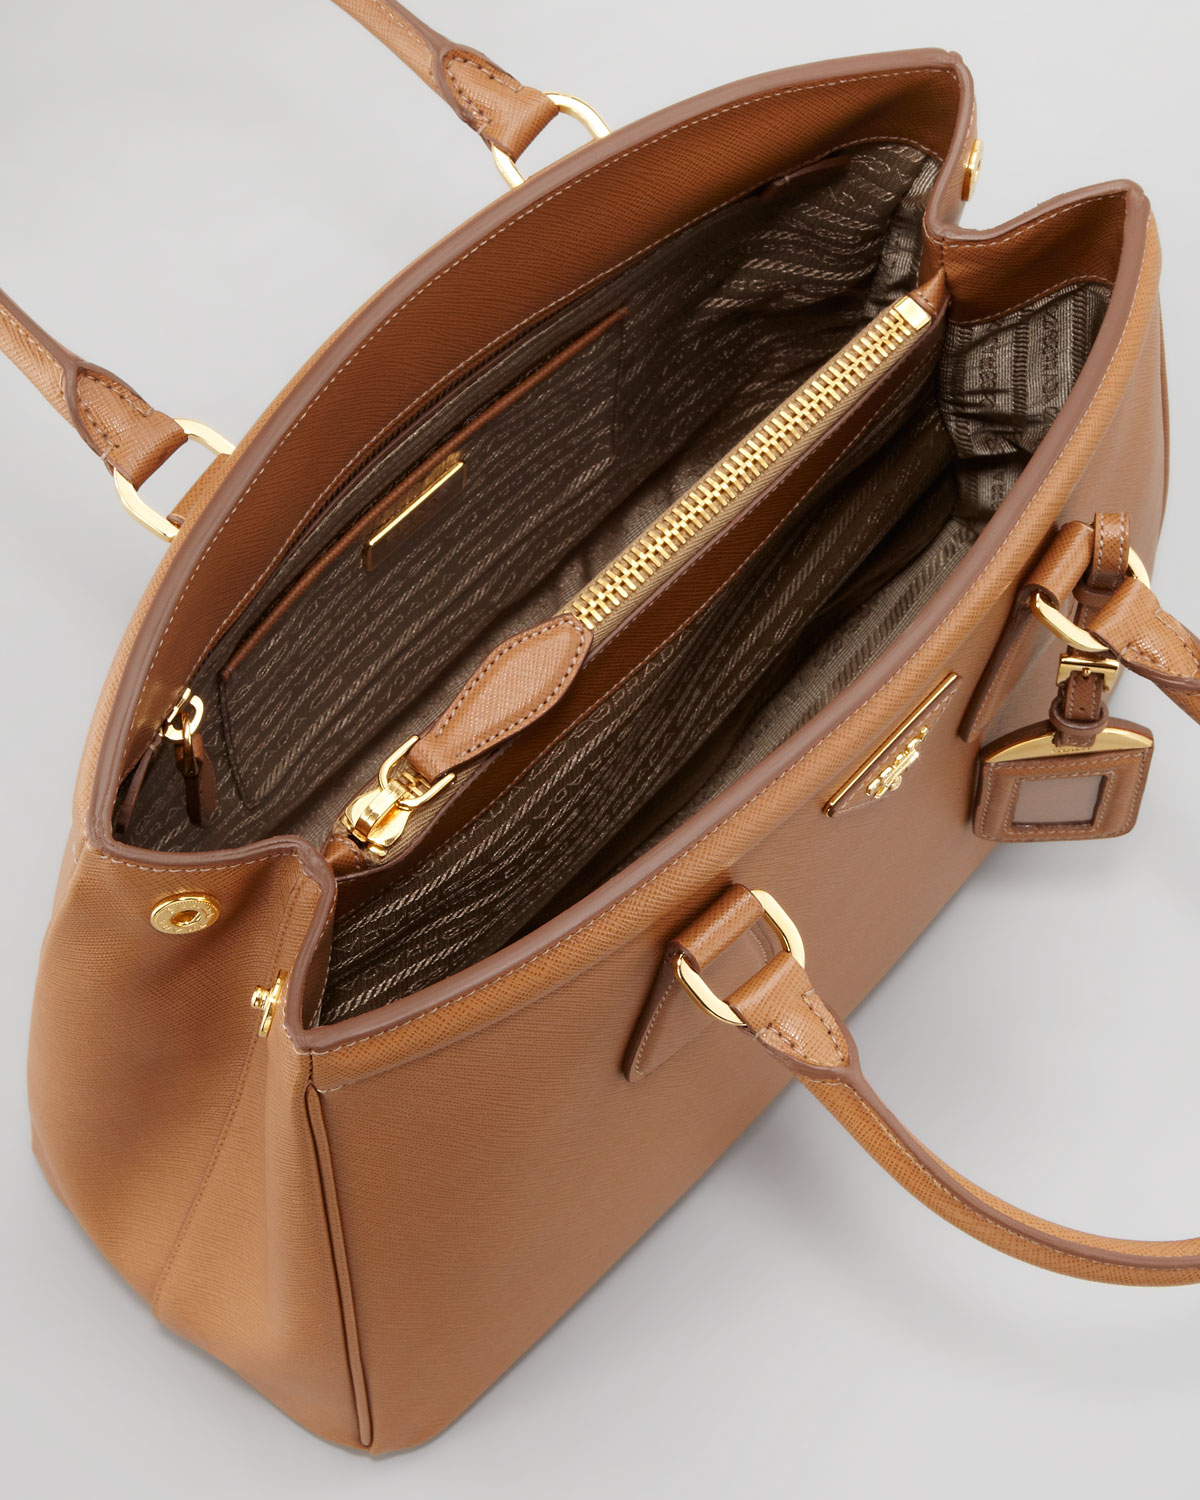 56a7fcaf78d2 where can i buy prada saffiano parabole bag caramel in brown caramel lyst  prada galleria bag